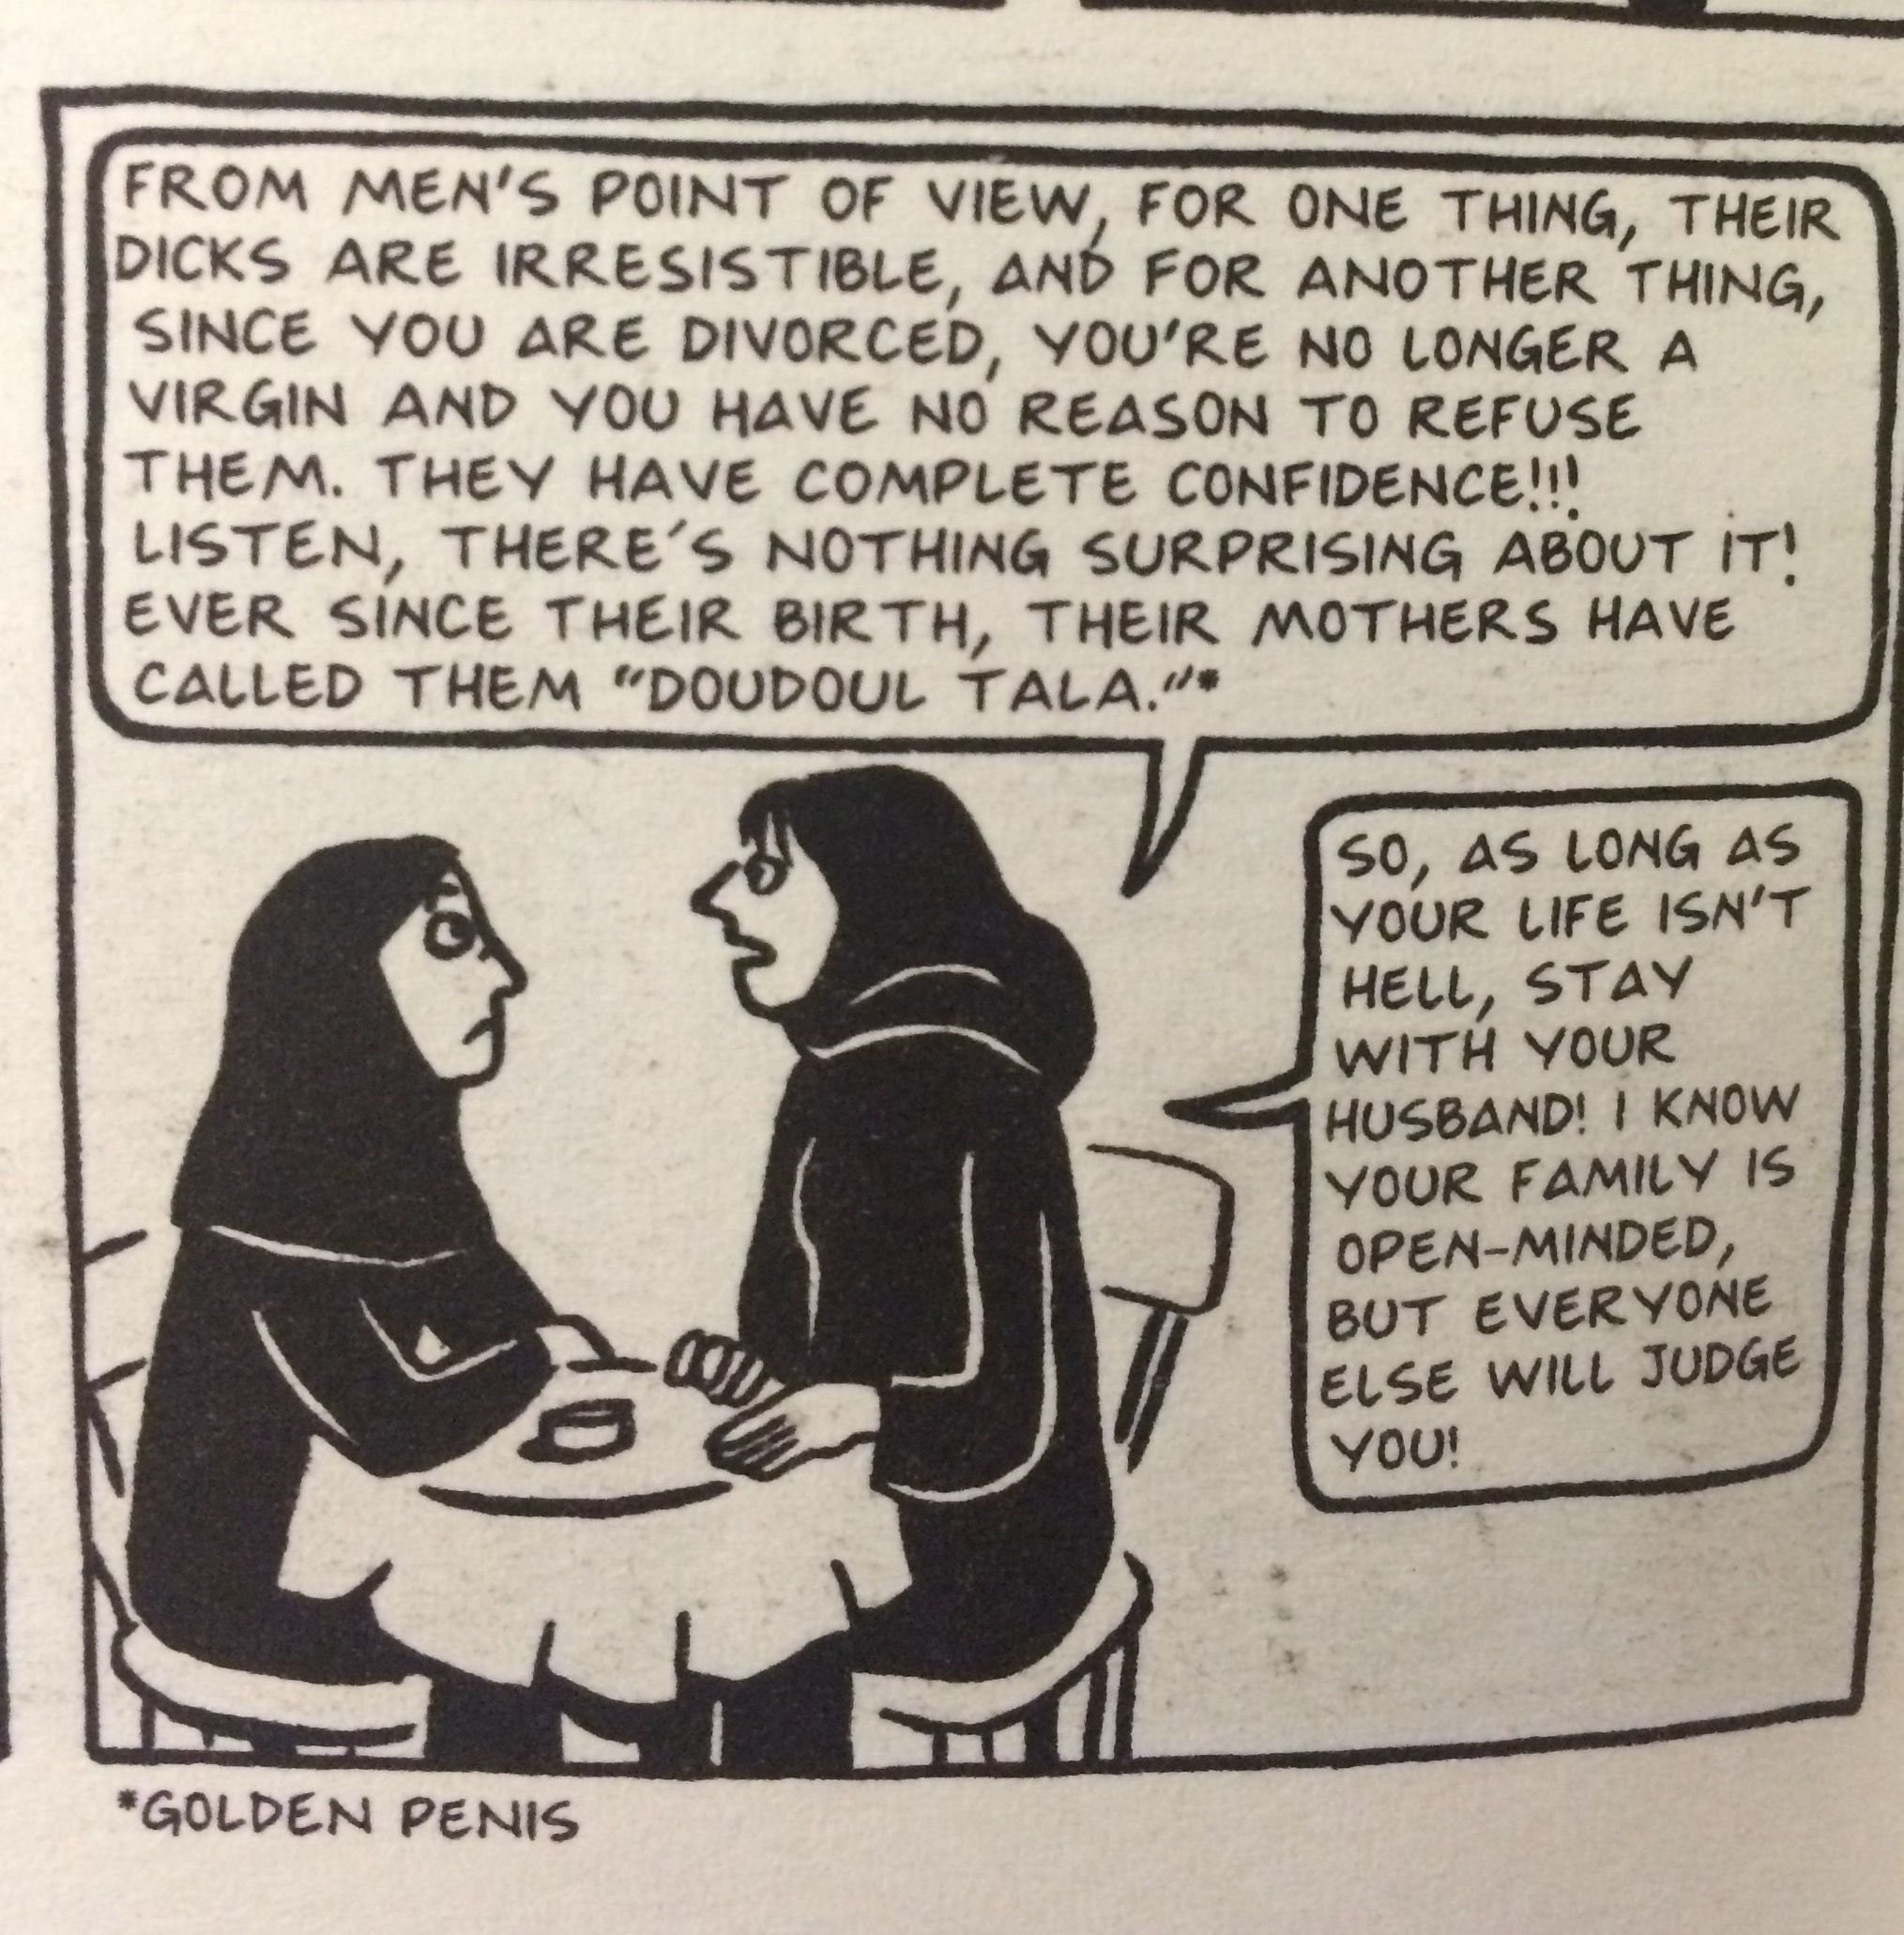 Persepolis A Brilliant Book By Marjane Satrapi Books Memes Point Of View